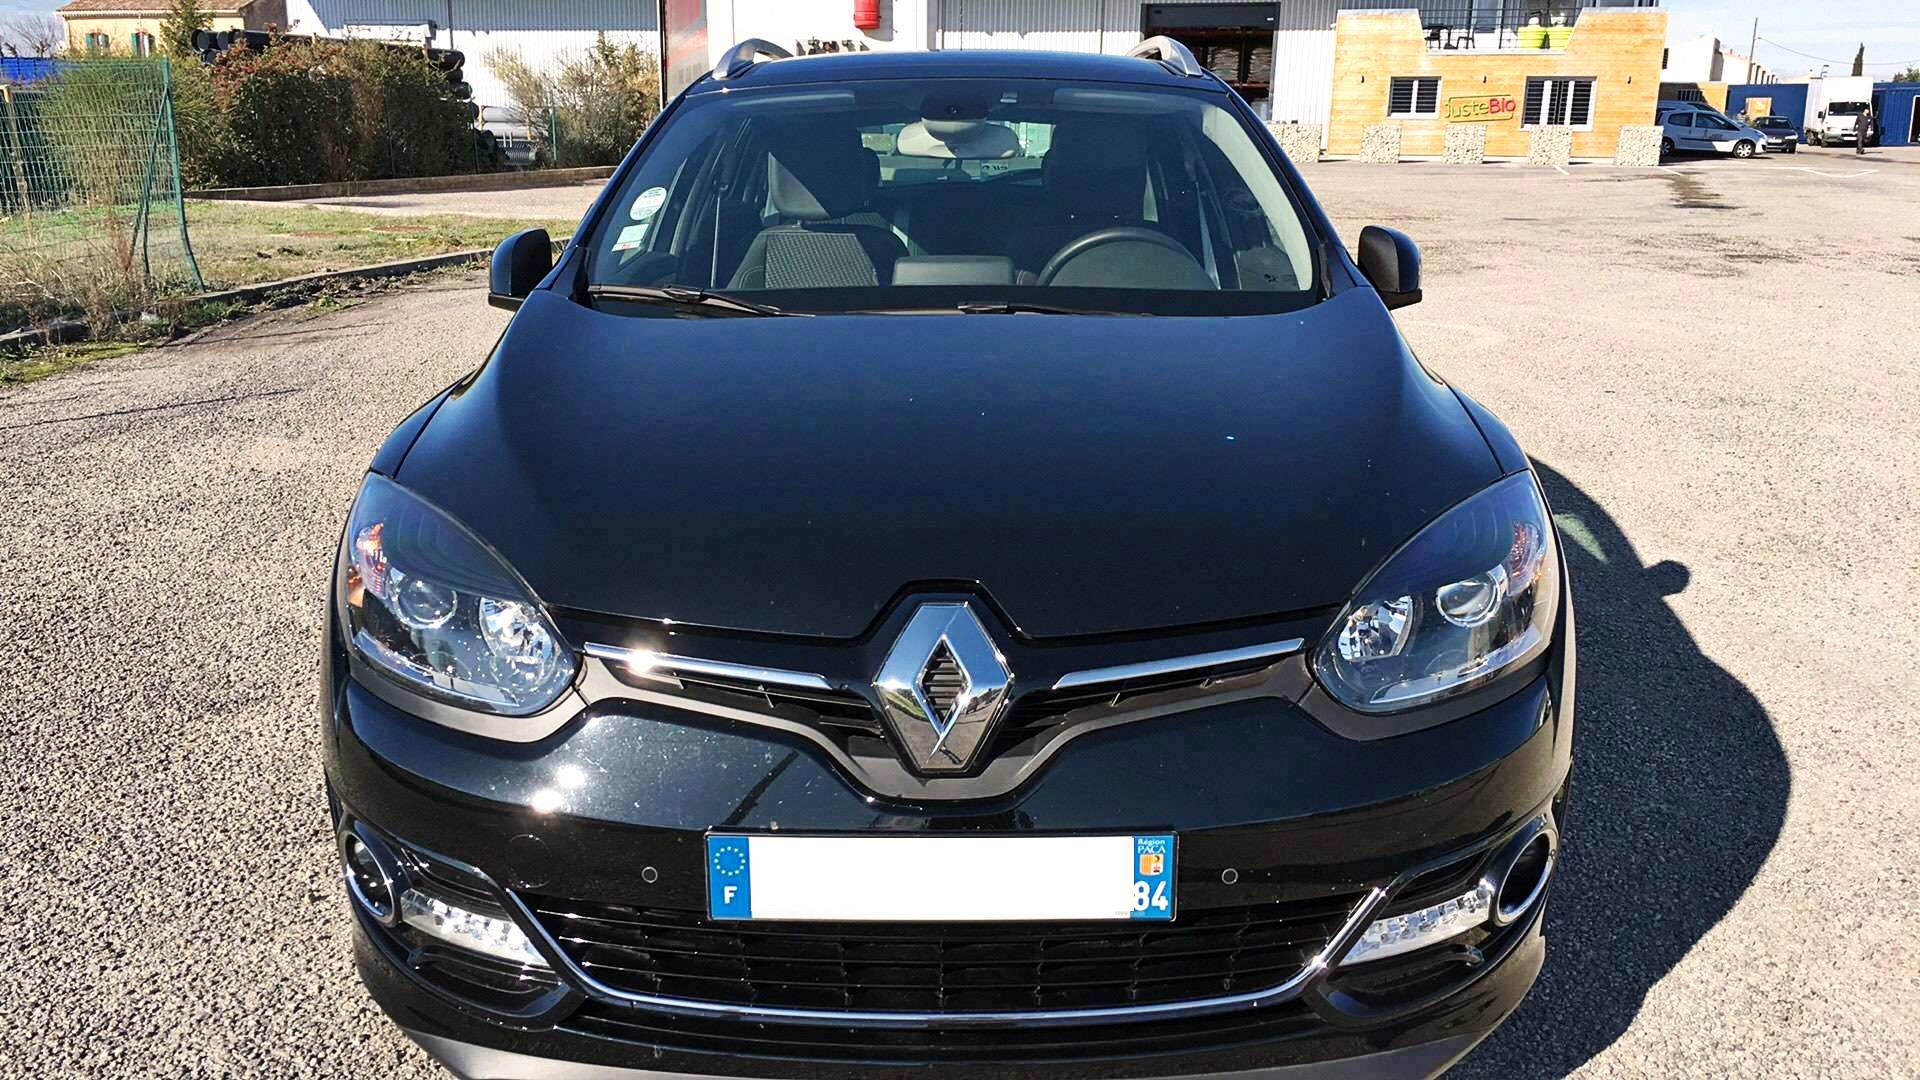 renault megane d 39 occasion estate 1 5 dci 110 bose edition edc bva avignon carizy. Black Bedroom Furniture Sets. Home Design Ideas